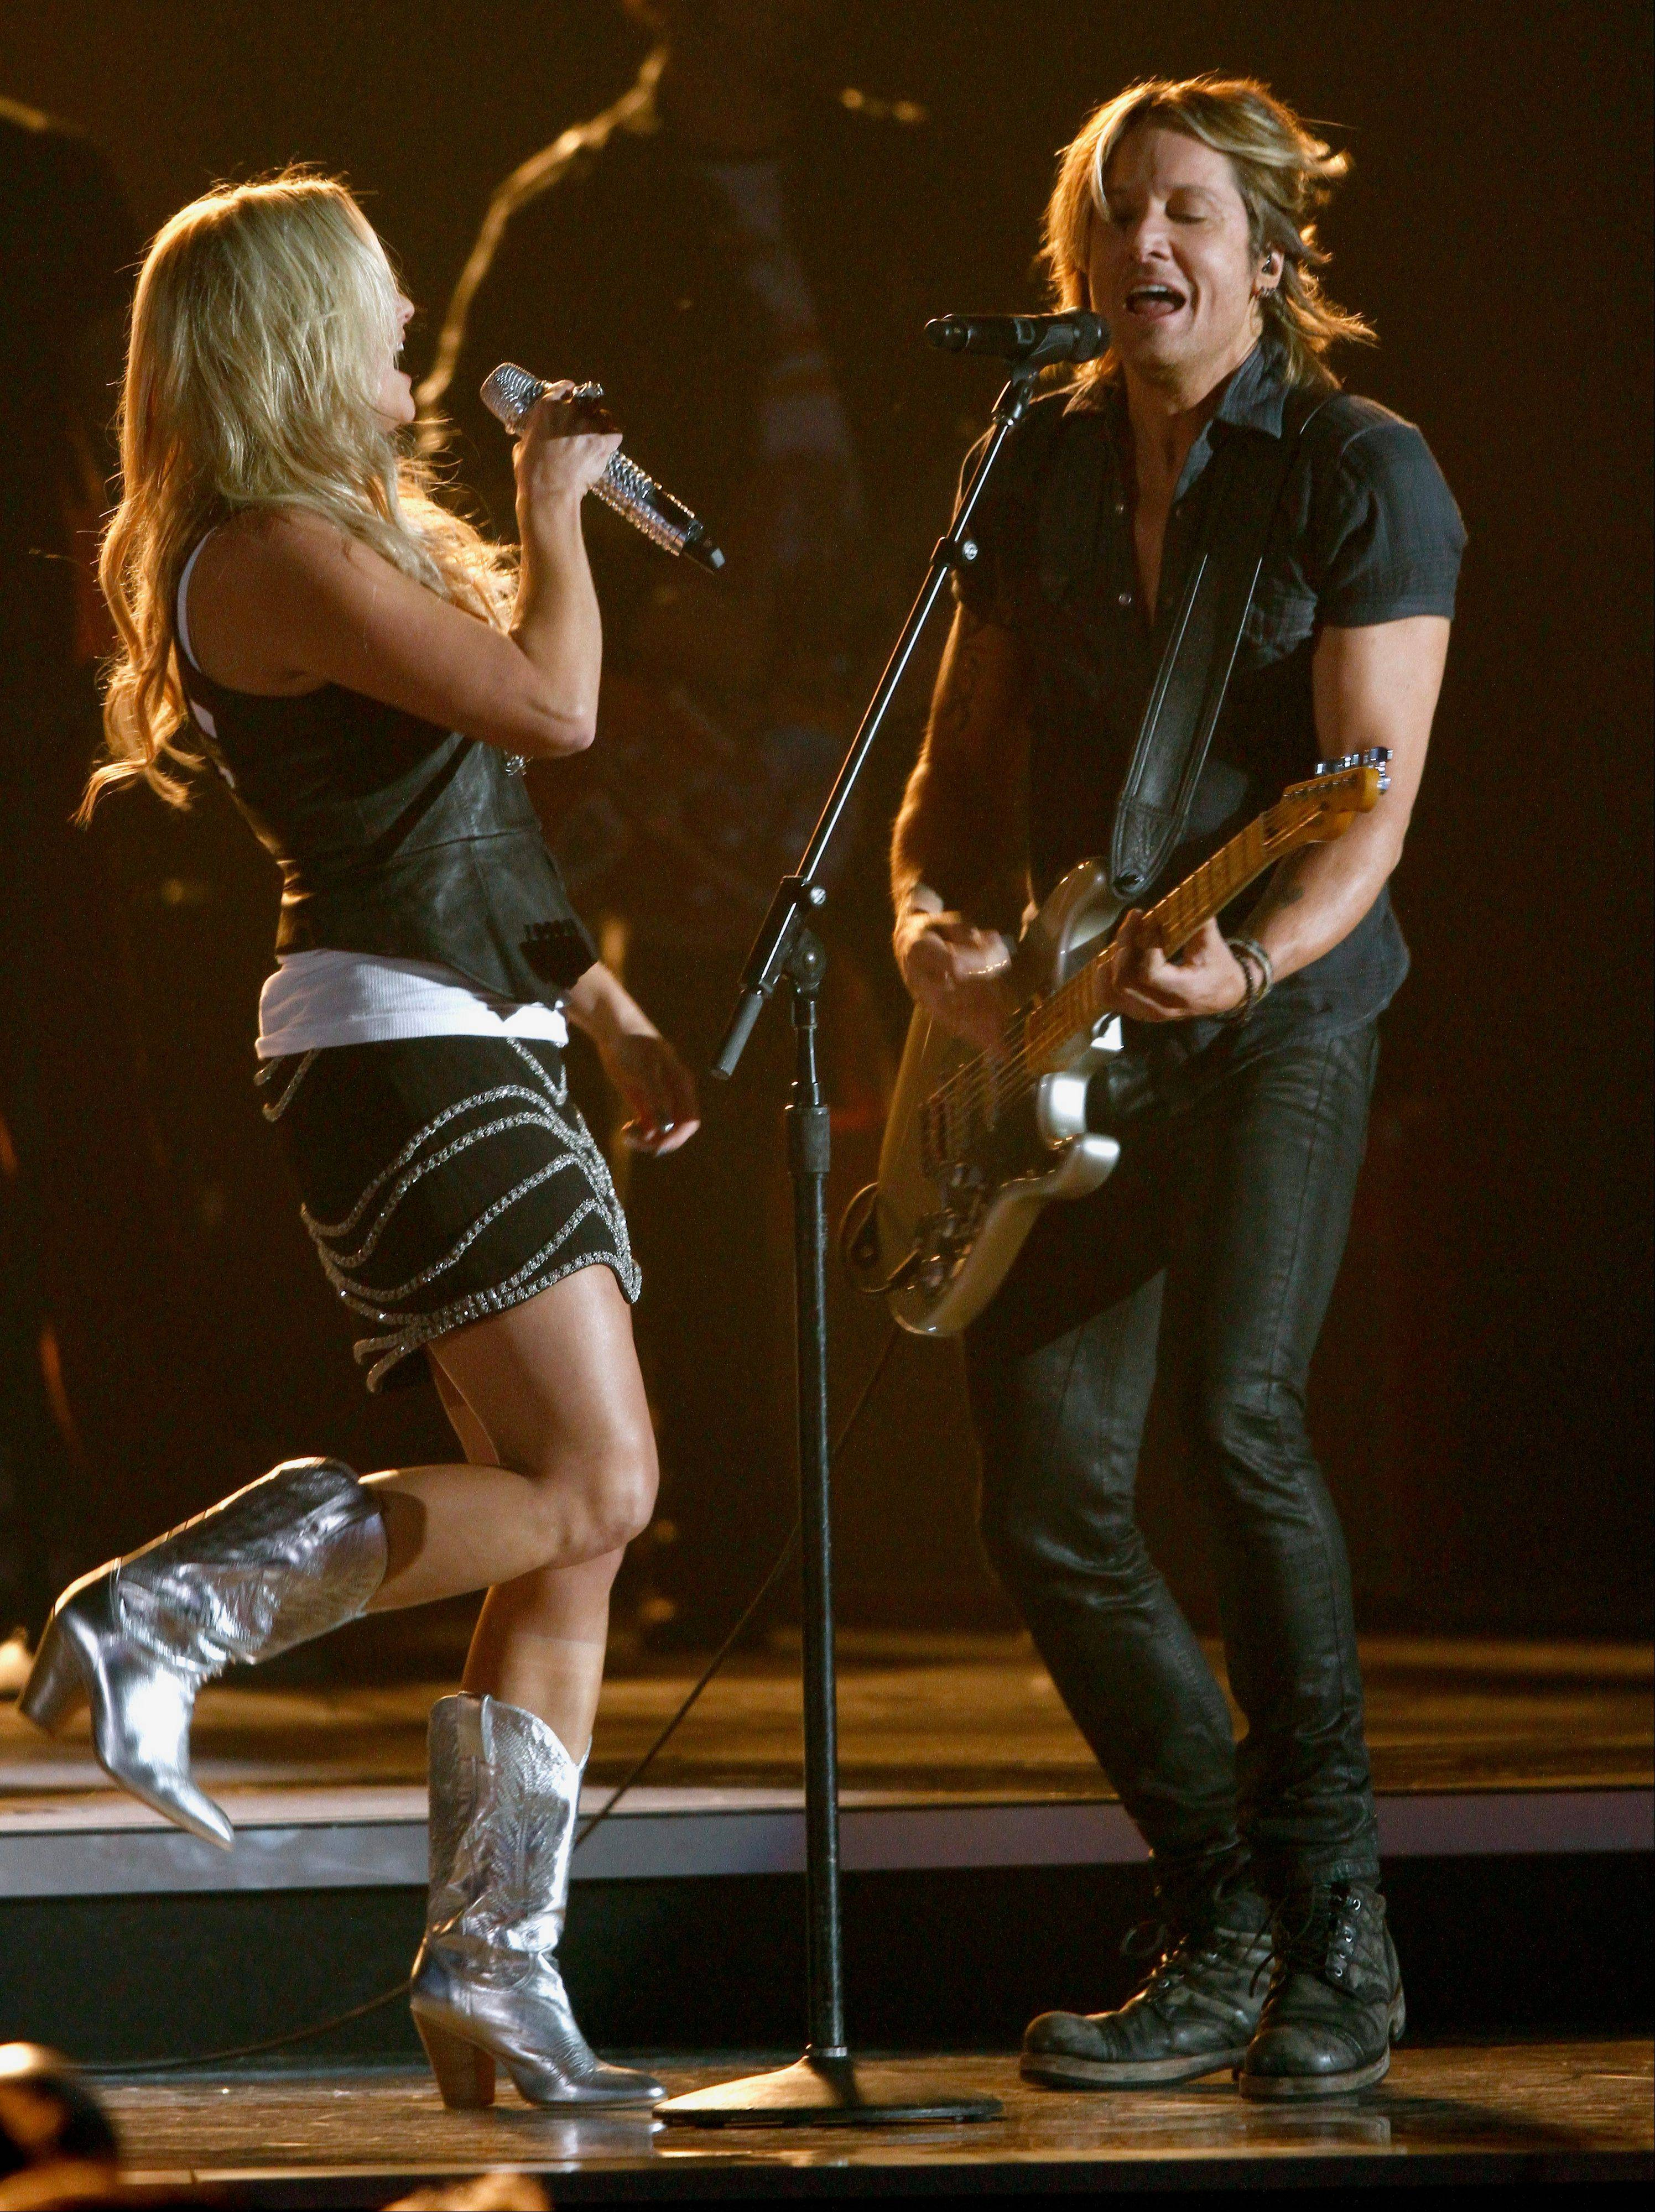 Keith Urban, right, and Miranda Lambert, perform